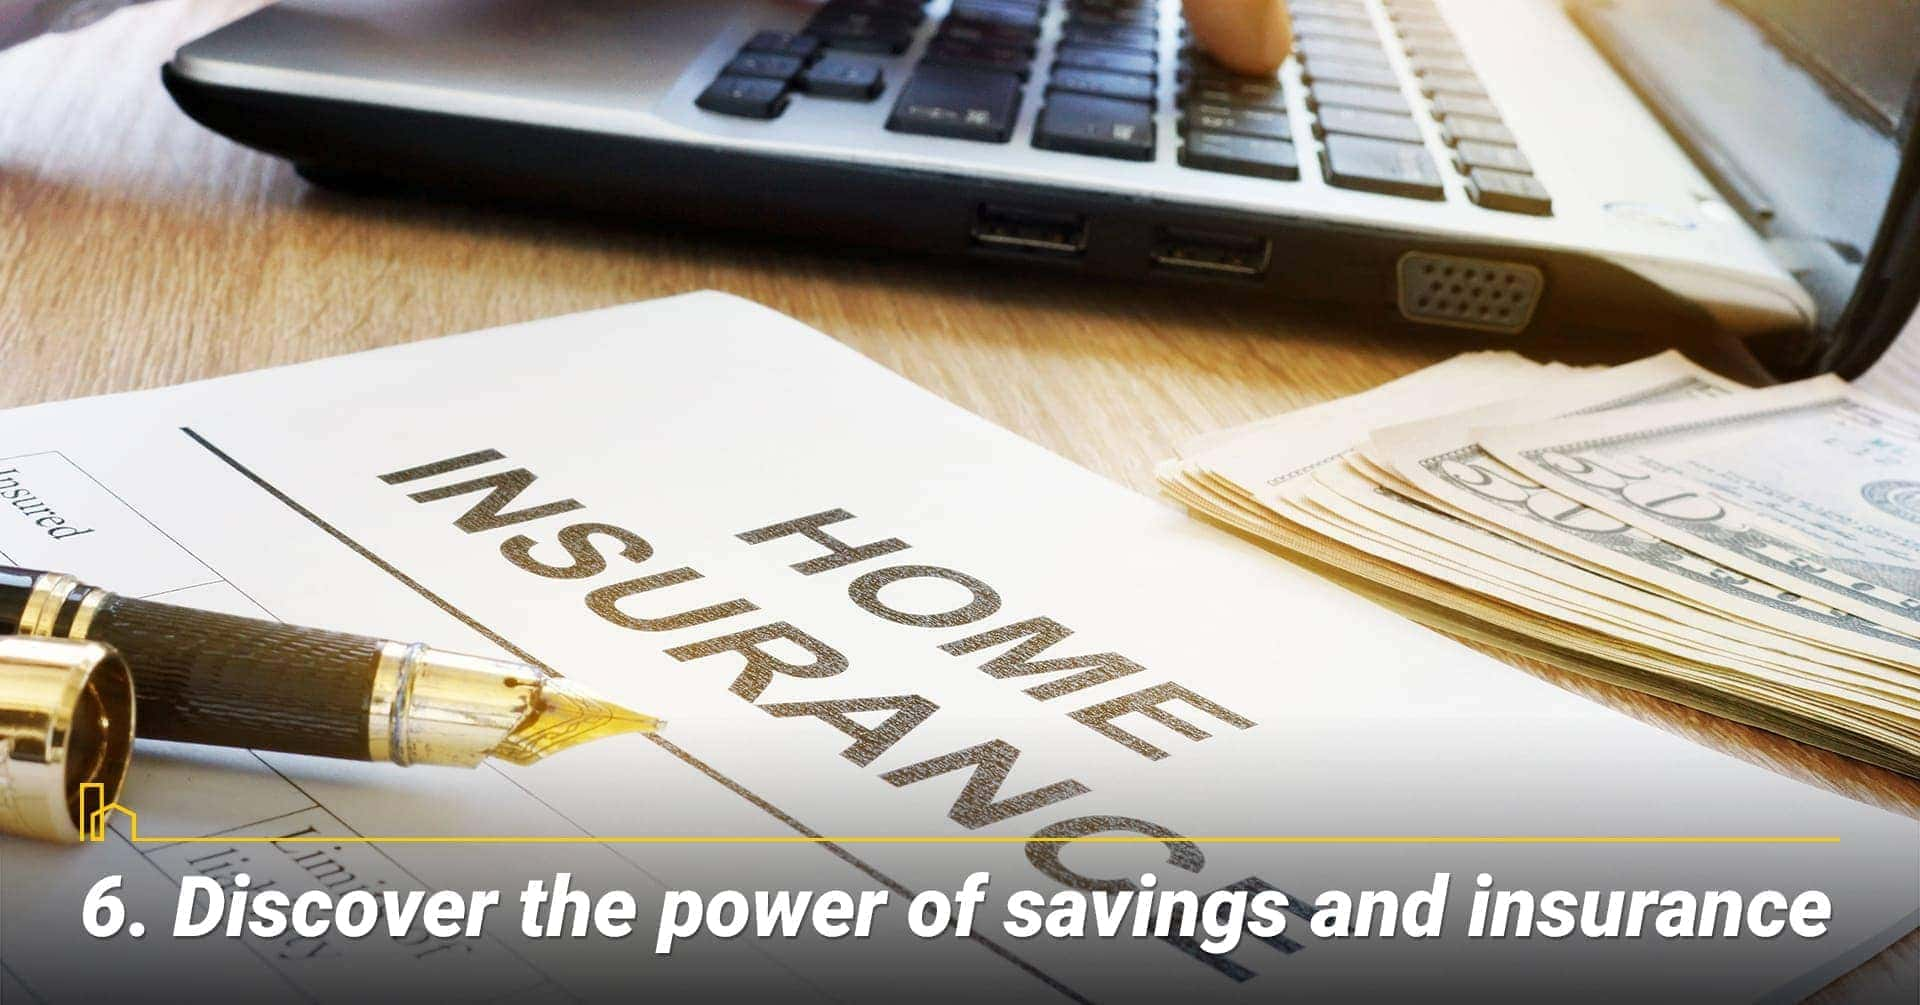 Discover the power of savings and insurance